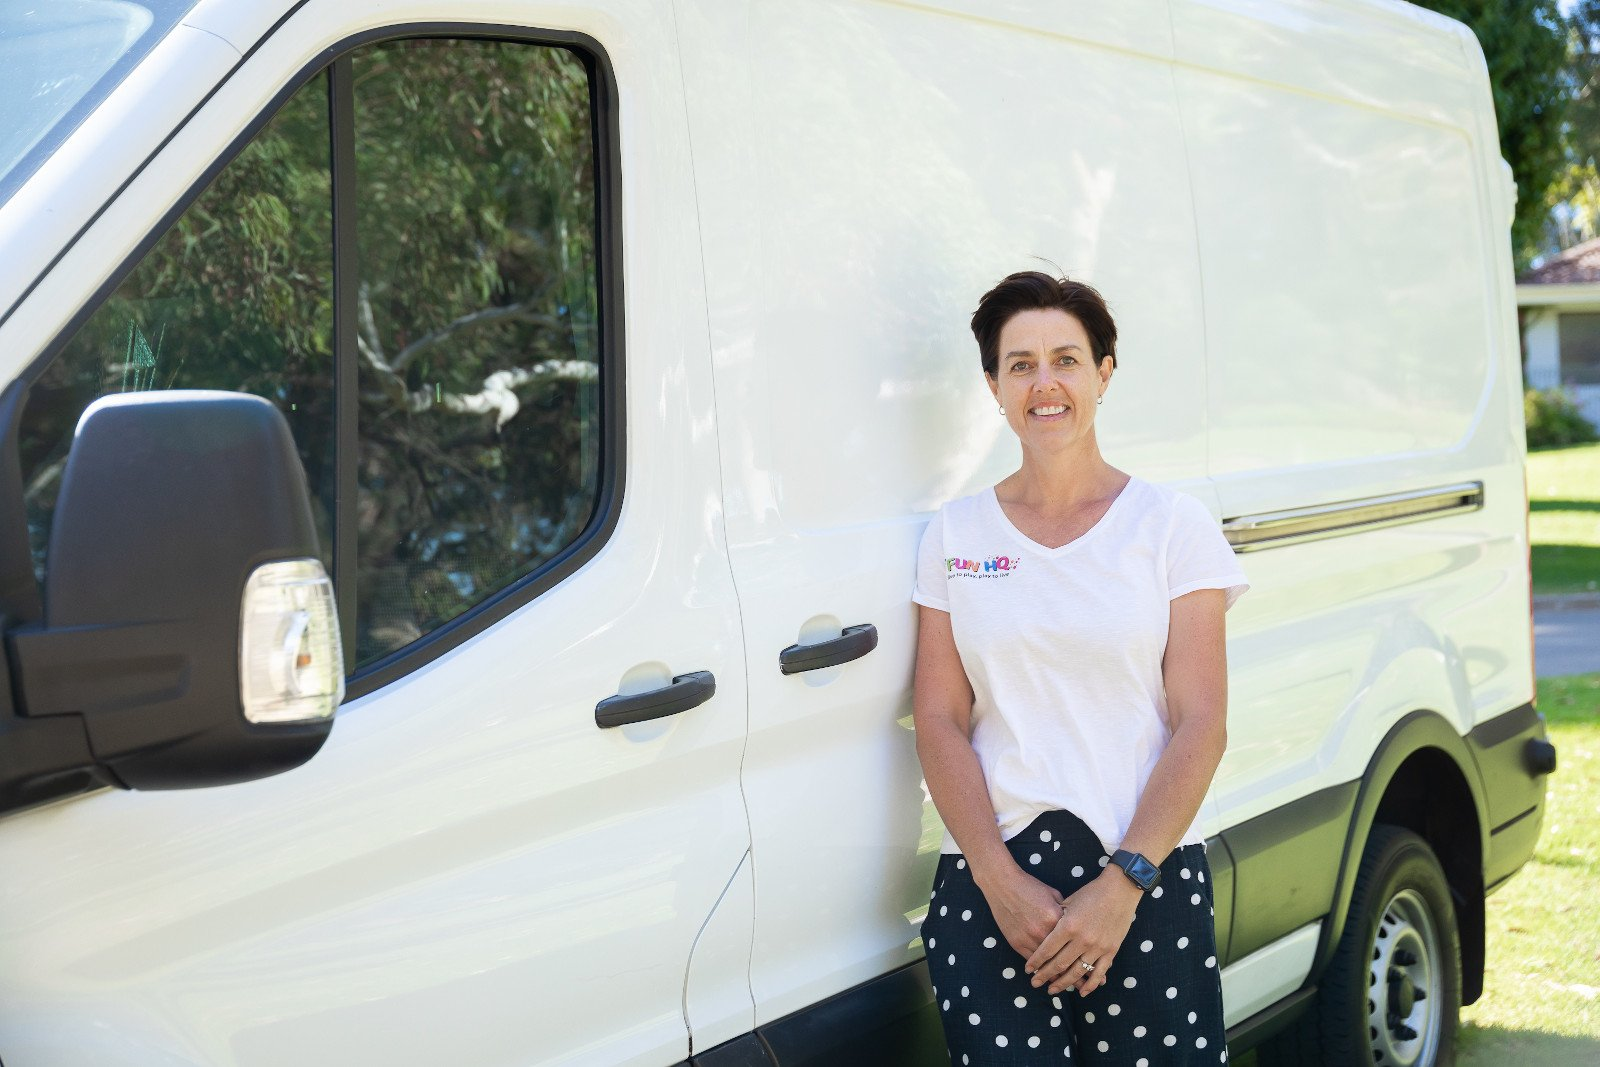 Fun HQ's Emma standing by her delivery van